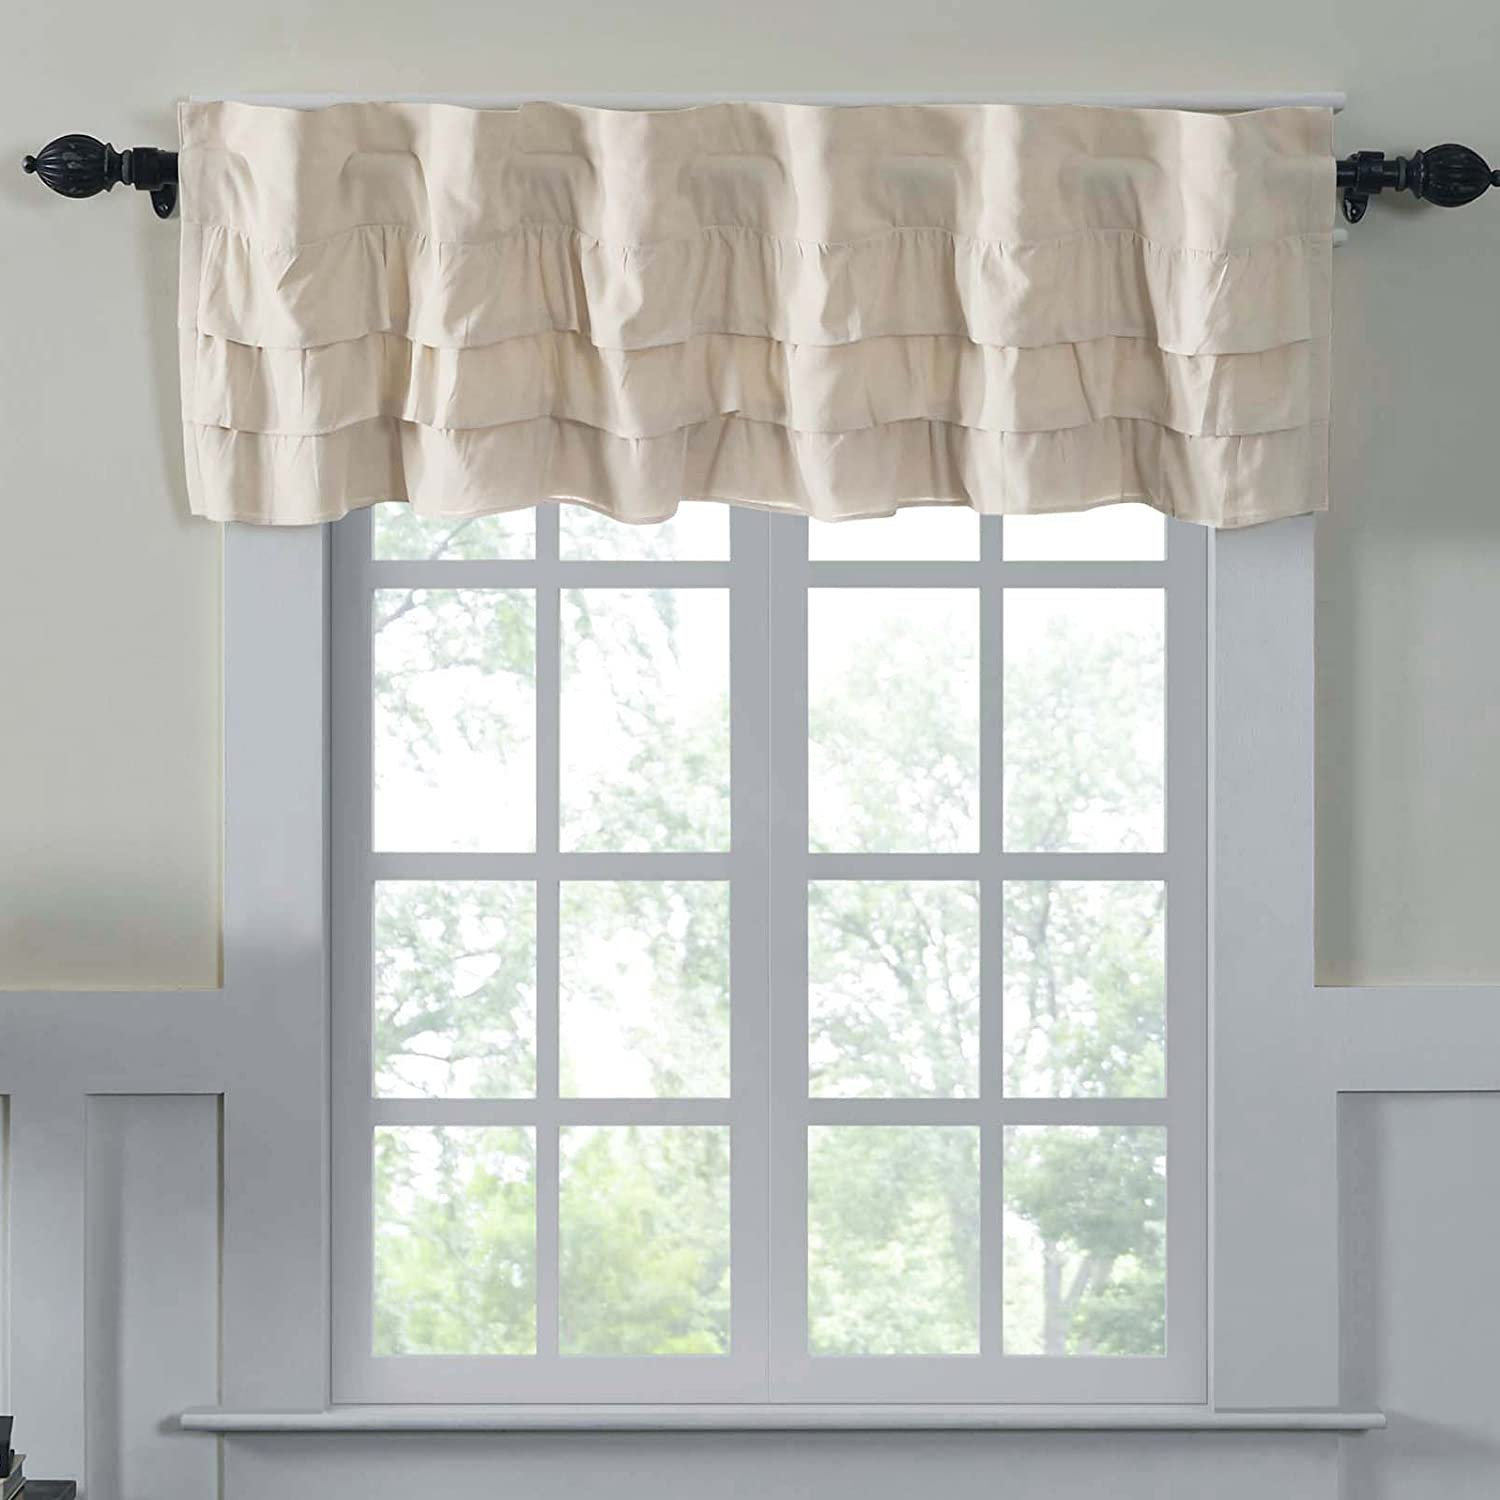 Piper Classics Ruffled Chambray Natural Lined Valance, 16x60, Farmhouse Decor Curtain VHC Brands